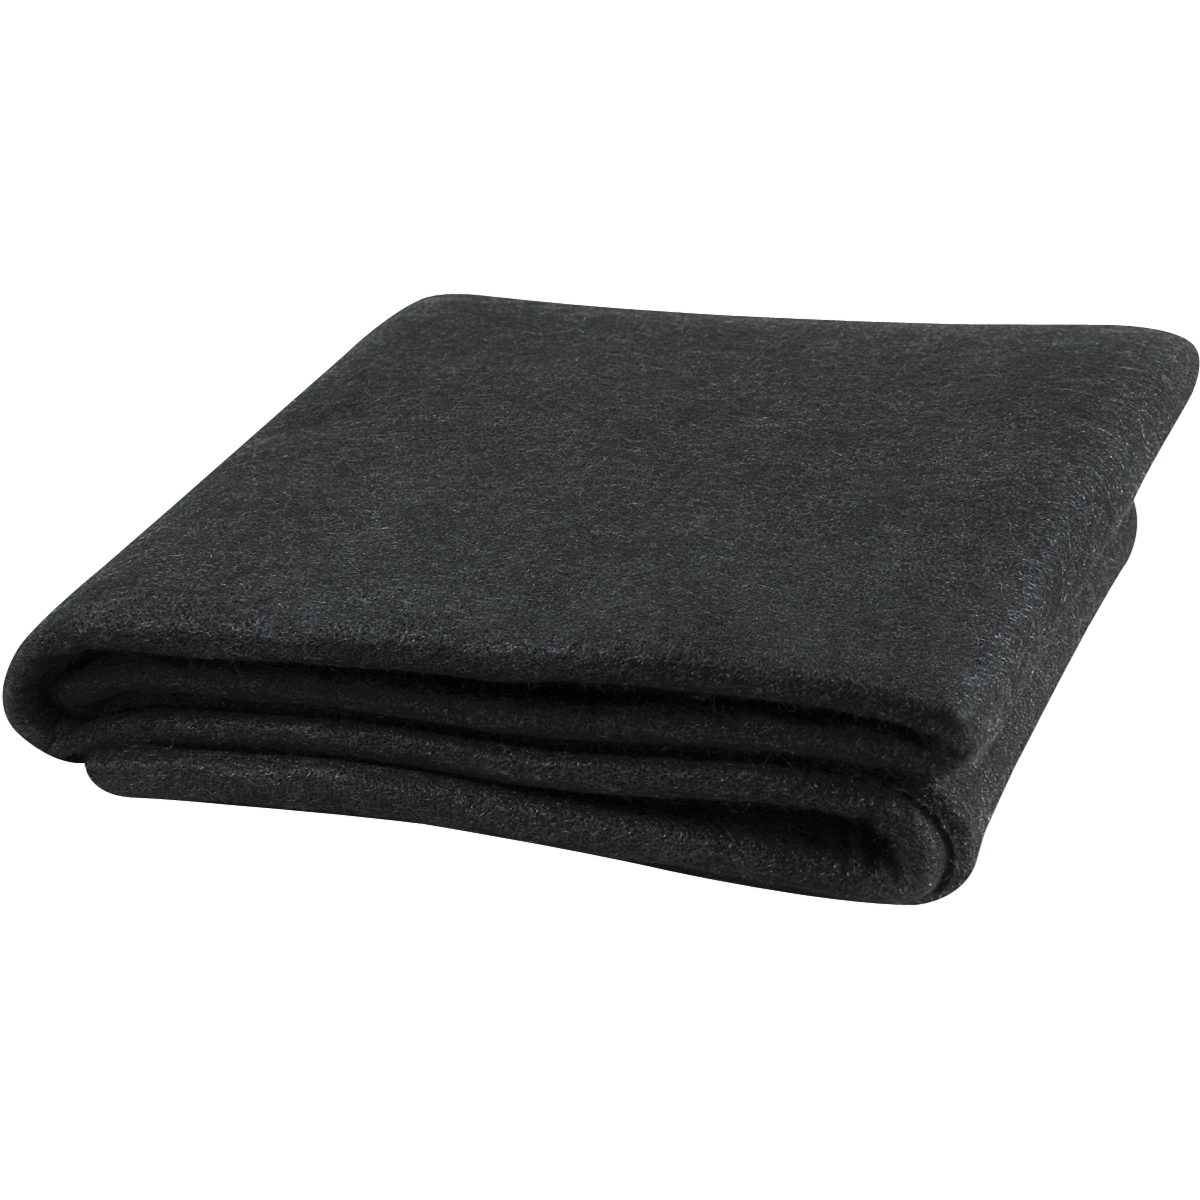 velvet shield®   oz black carbonized fiber welding blanket  - end comhikashopproductshowdefault